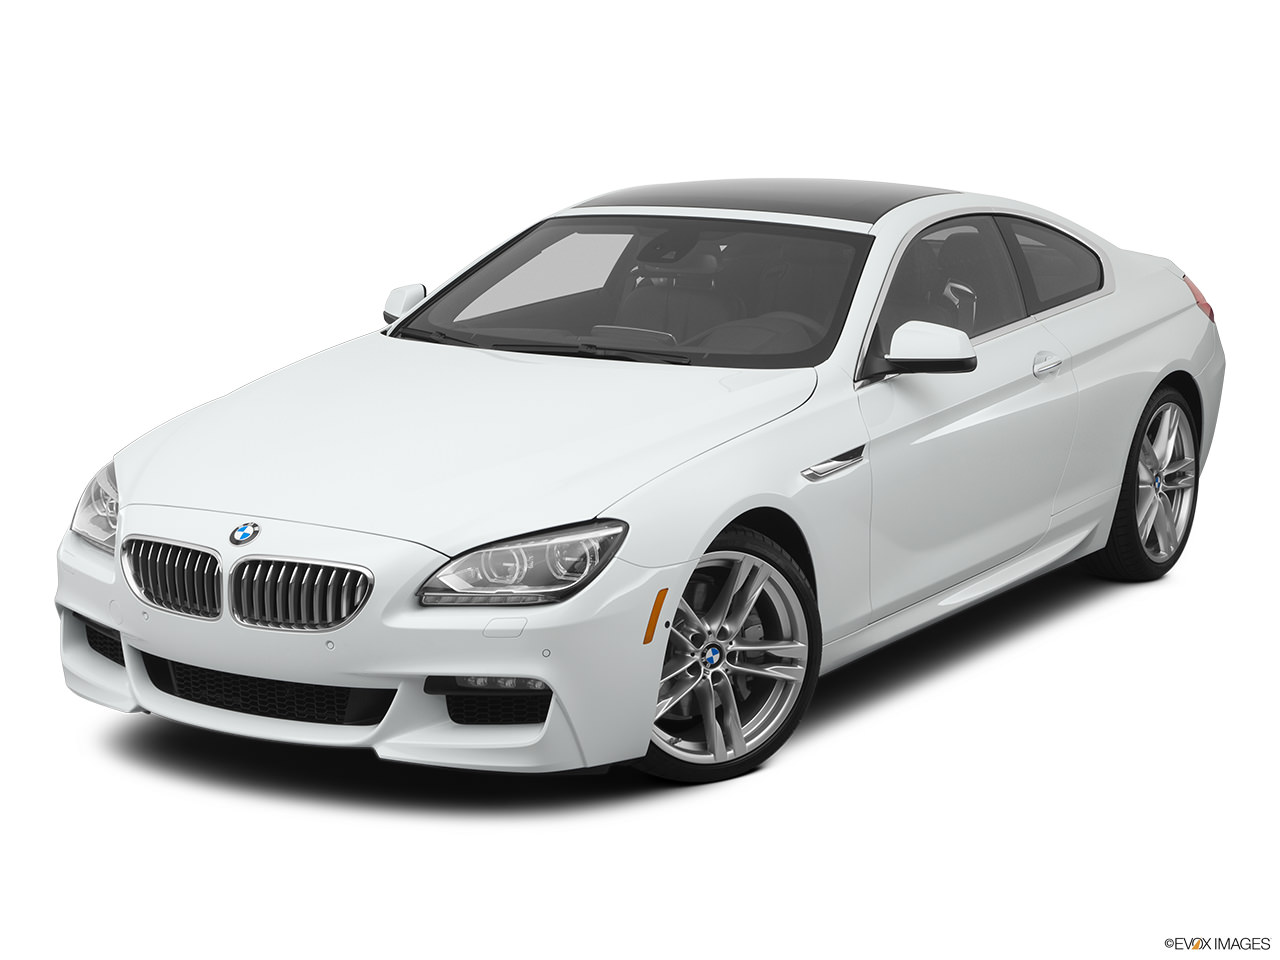 bmw certified pre owned cpo car program yourmechanic advice. Black Bedroom Furniture Sets. Home Design Ideas